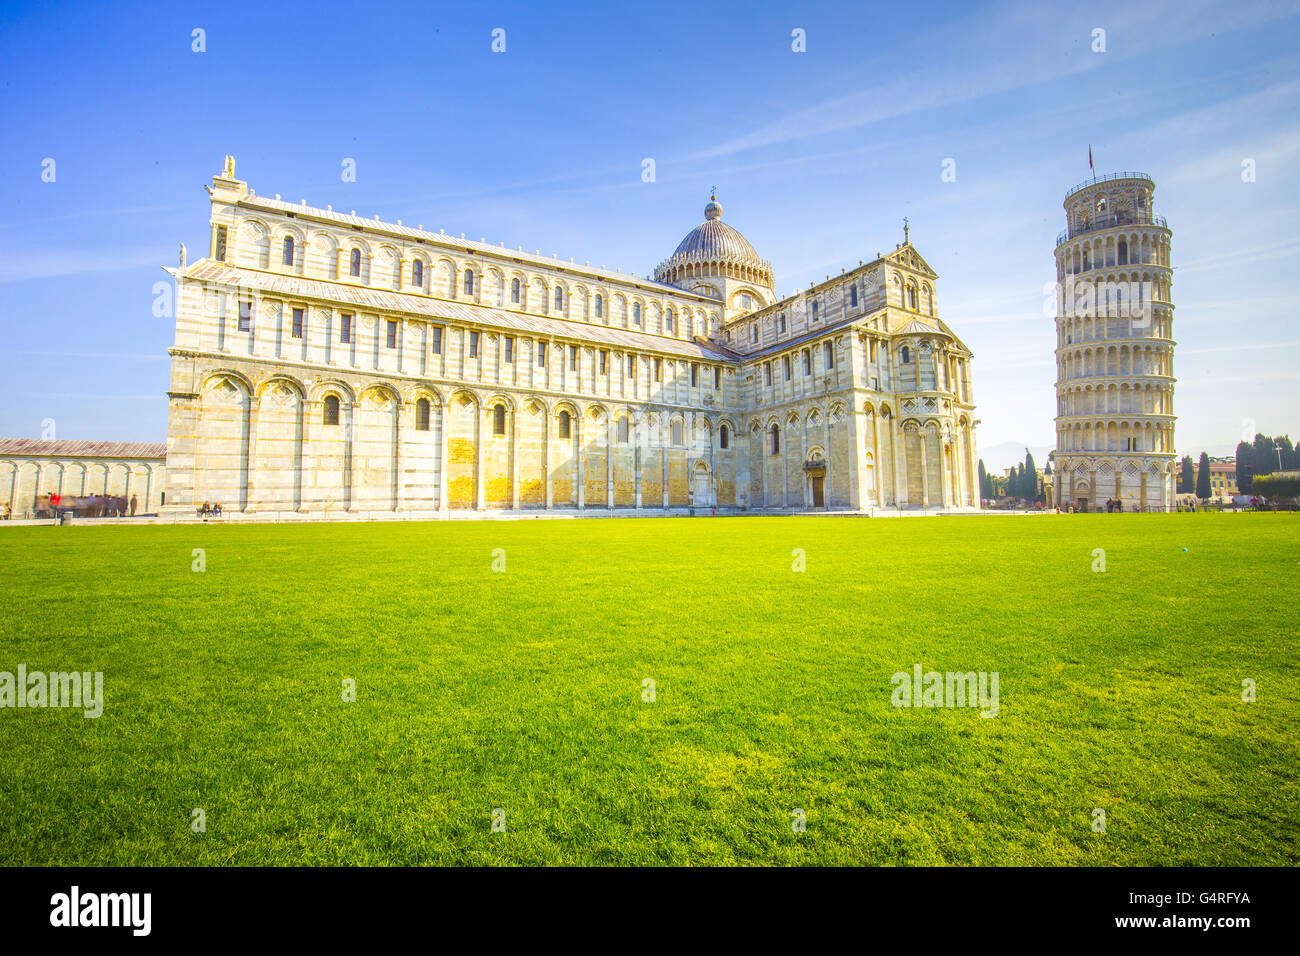 The Leaning Tower of Pisa in Italy. Stock Photo